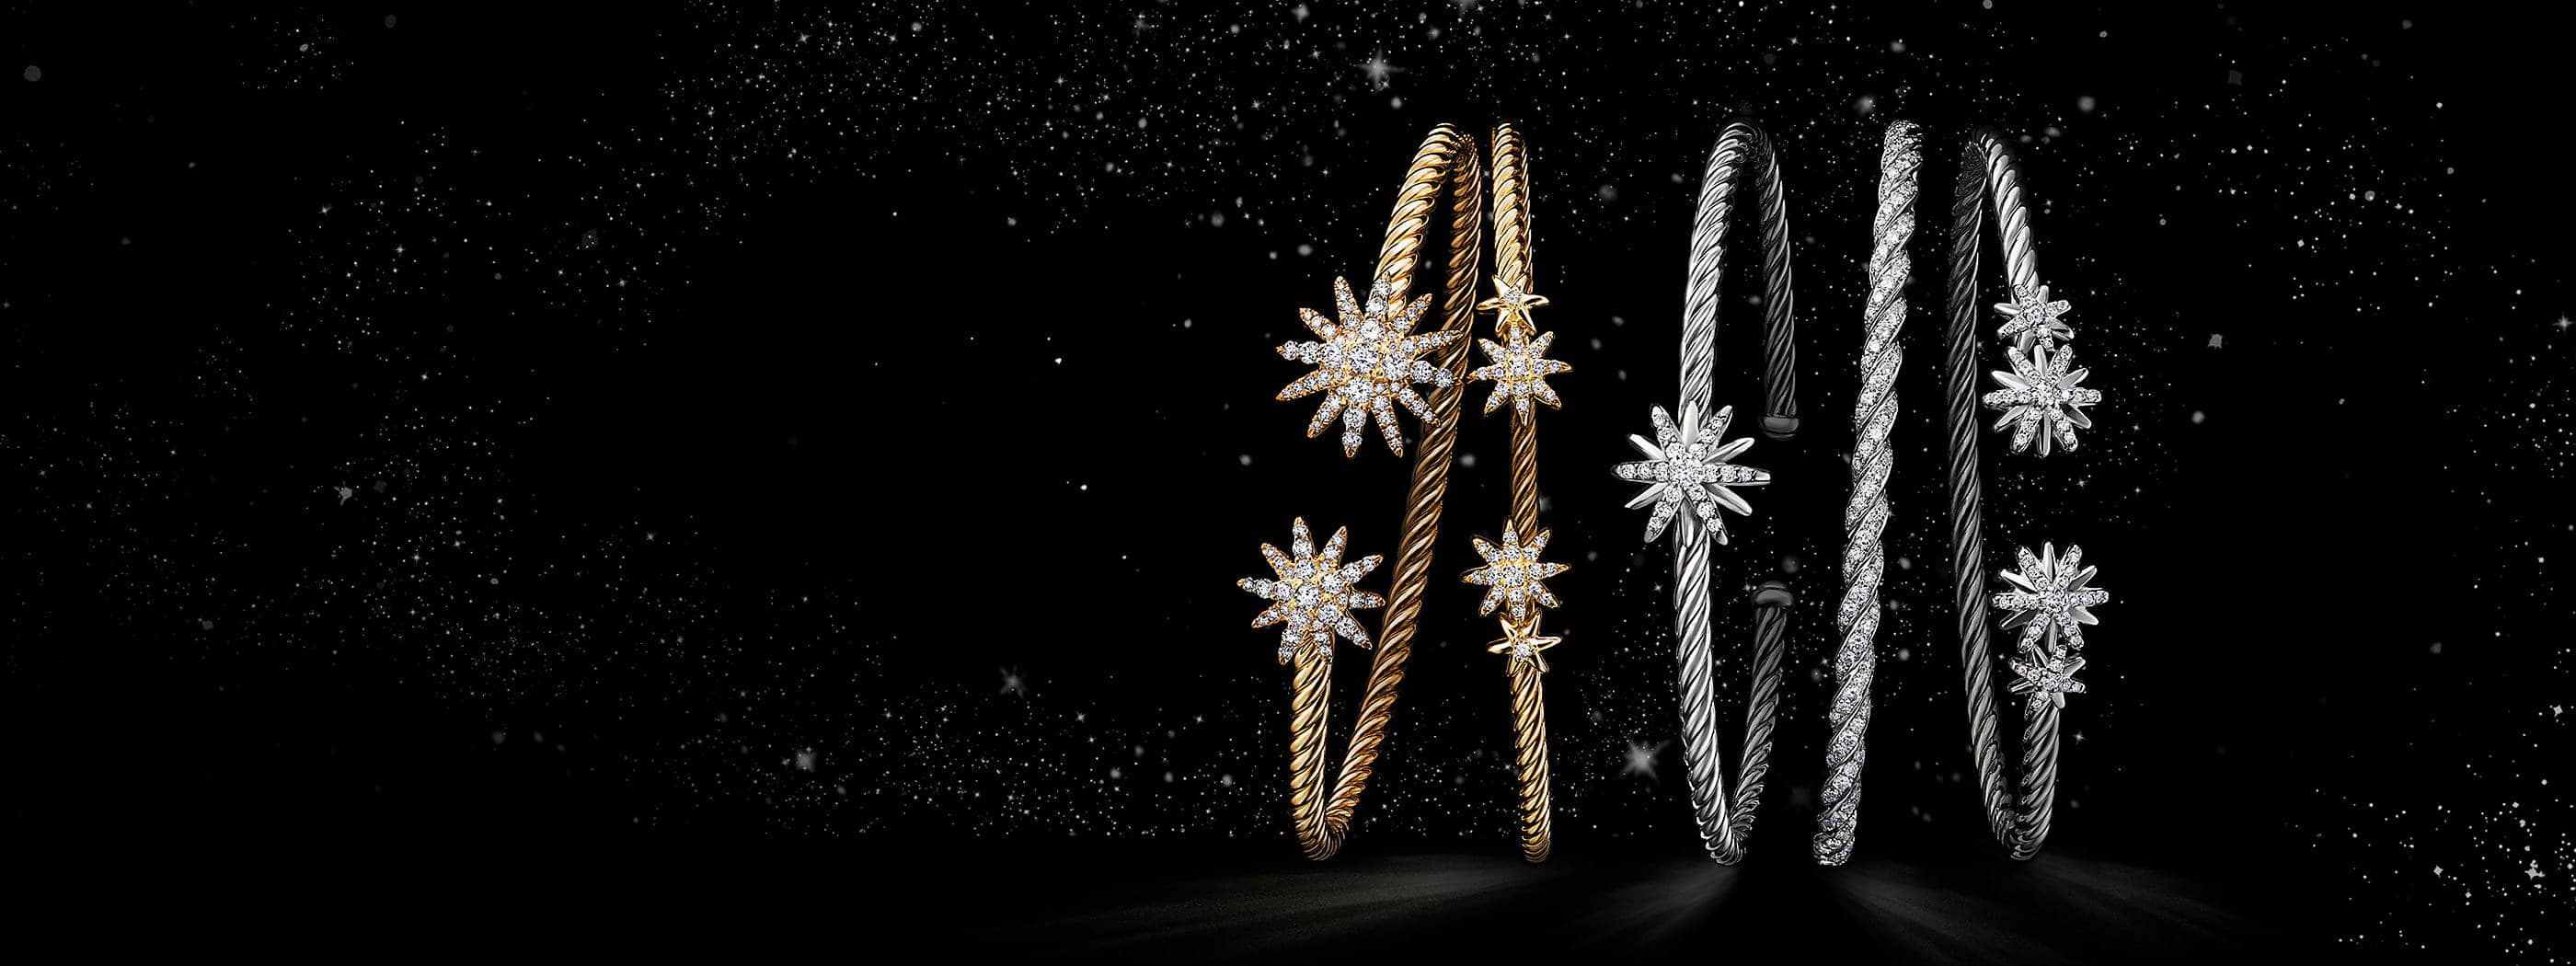 A color photograph shows a horizontal stack of five David Yurman women's bracelets from the Starburst and Pavéflex collections floating atop a white cloud in a starry night sky. The jewelry is crafted from 18K white or yellow gold with pavé diamonds or sterling silver with pavé diamonds.